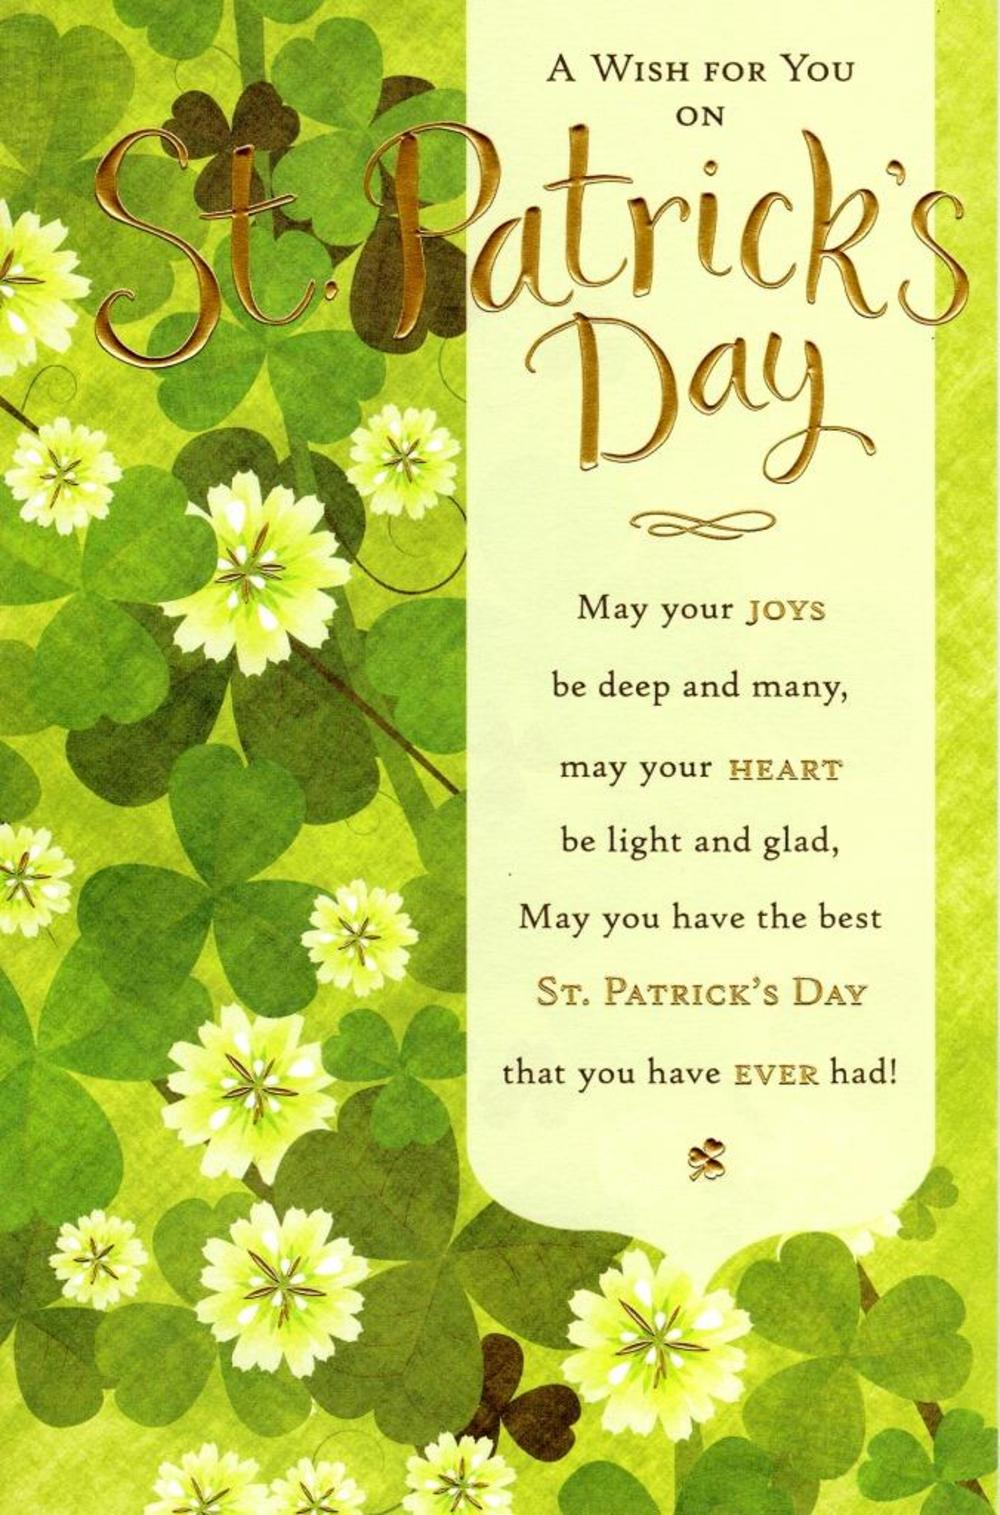 A St Patrick's Day Wish Greeting Card